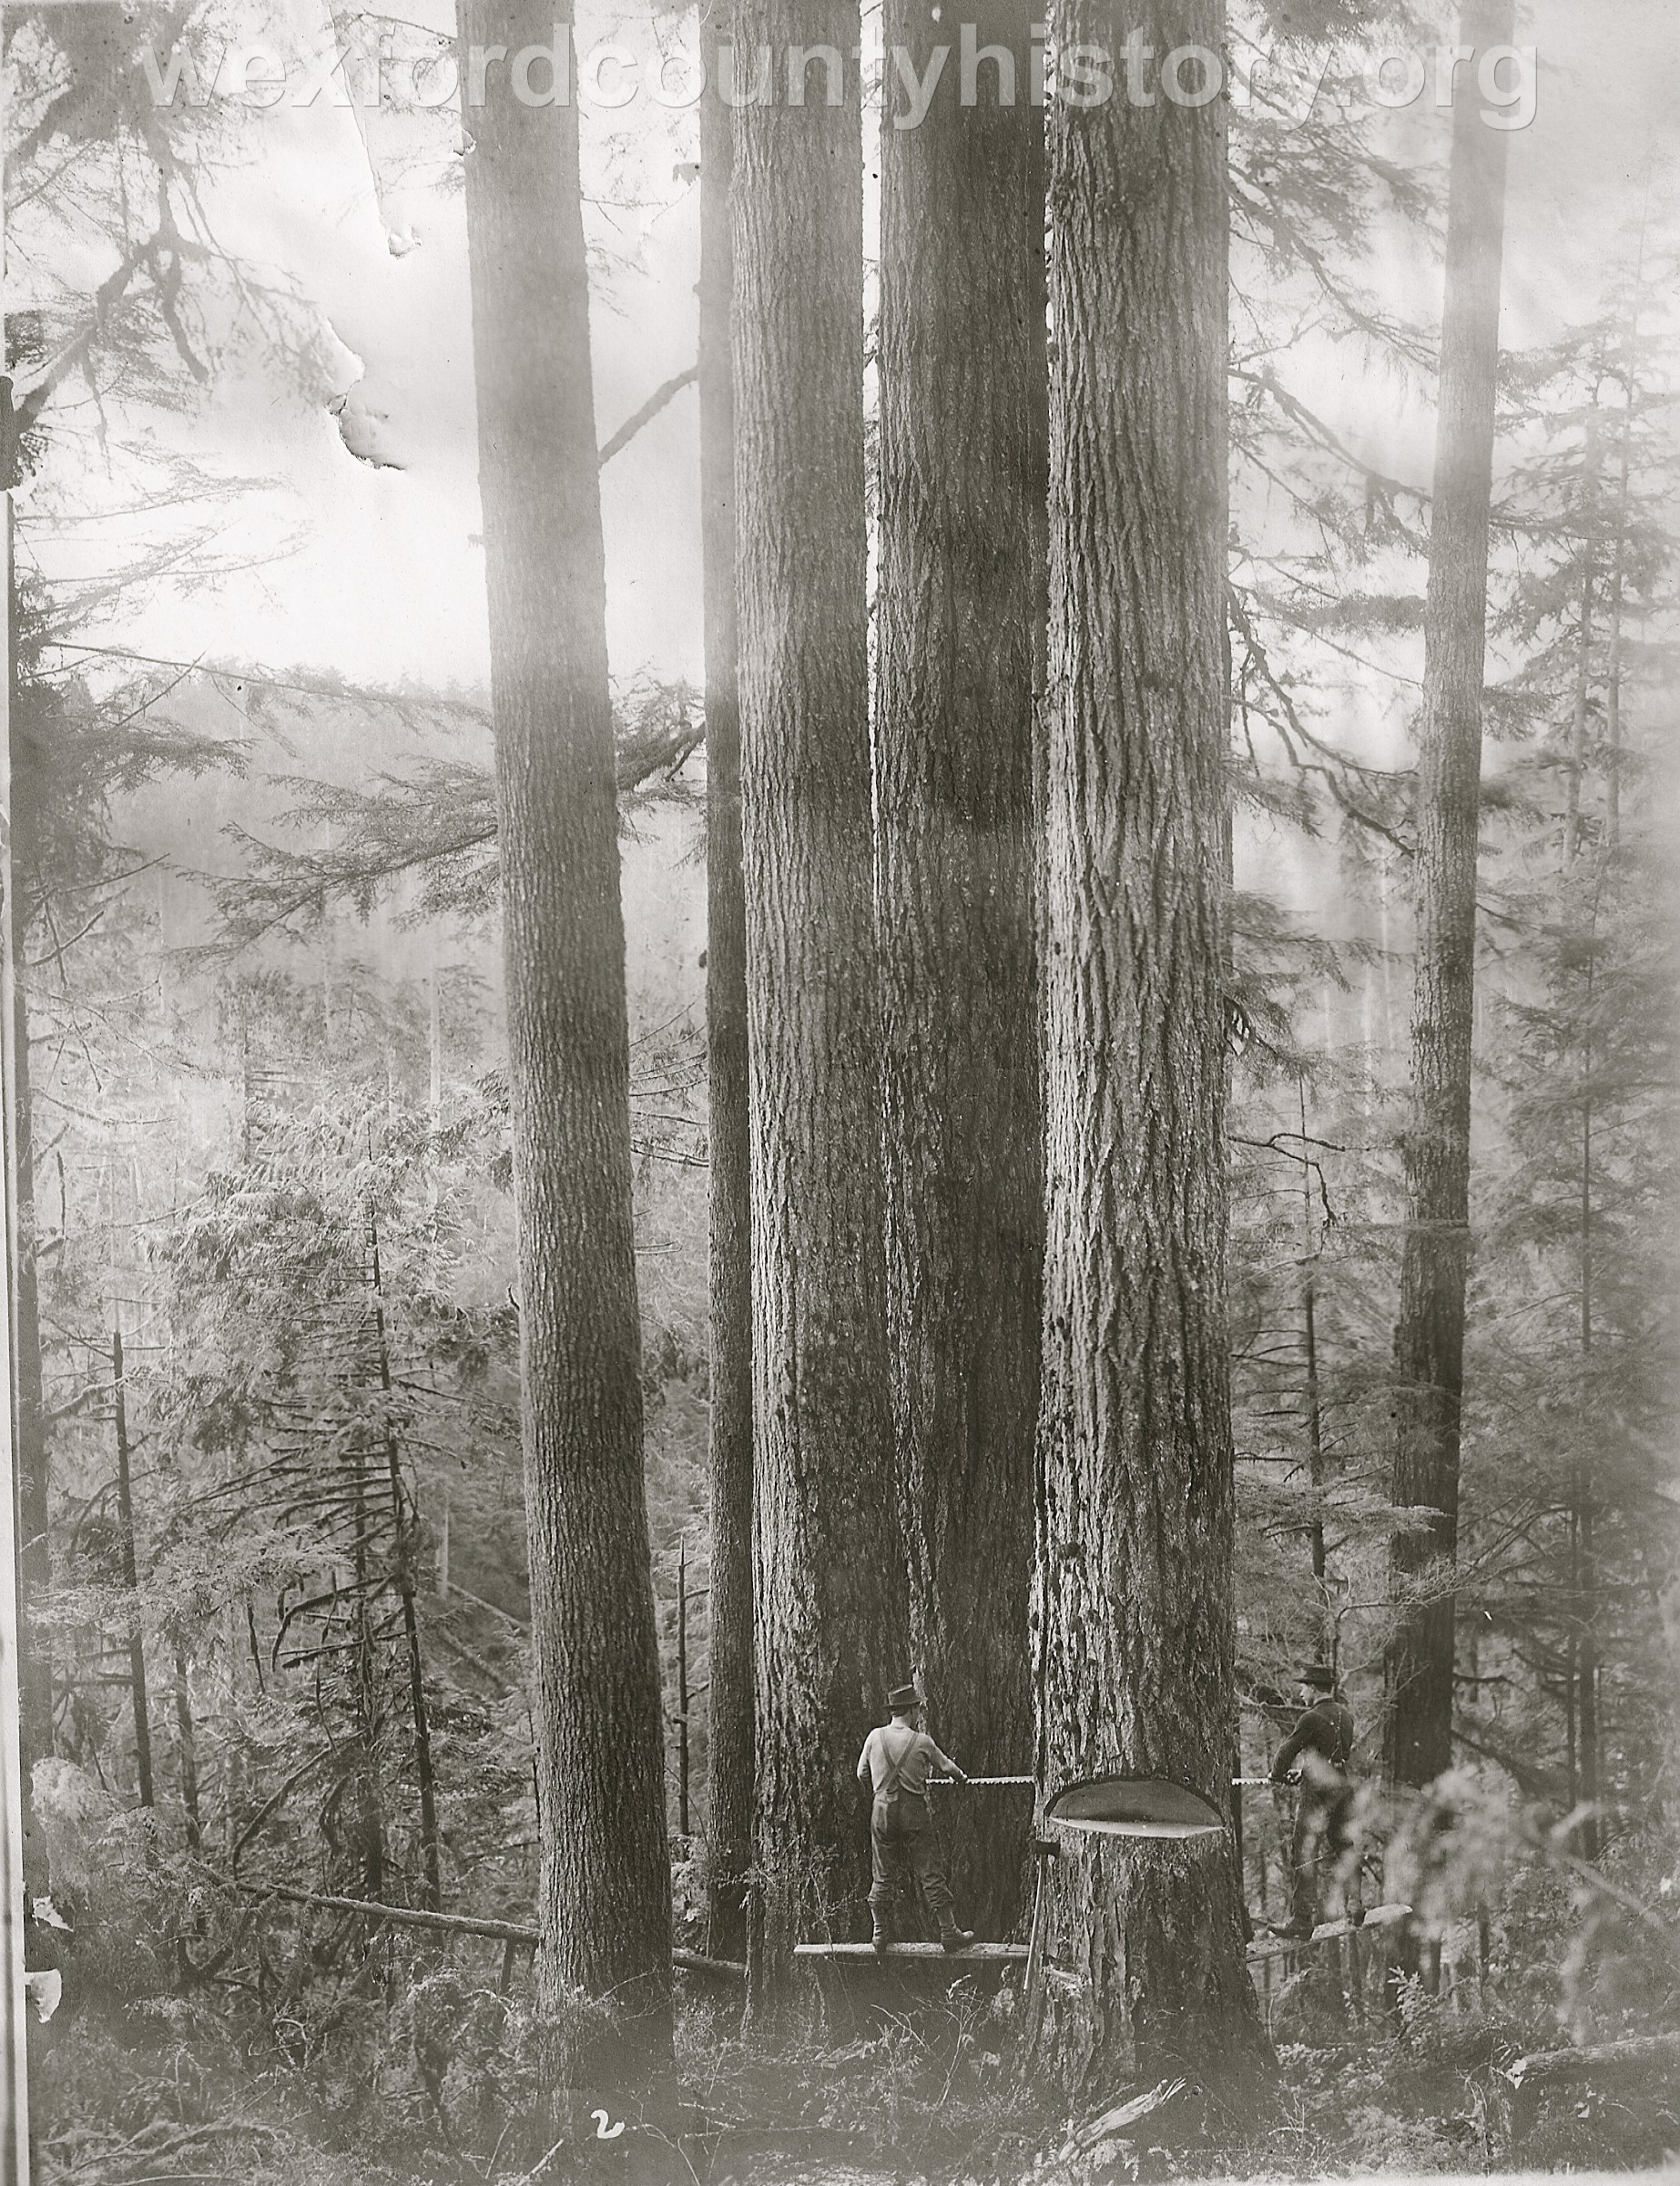 Wexford-County-Lumber-Timber-Harvest-Circa-1890s-2